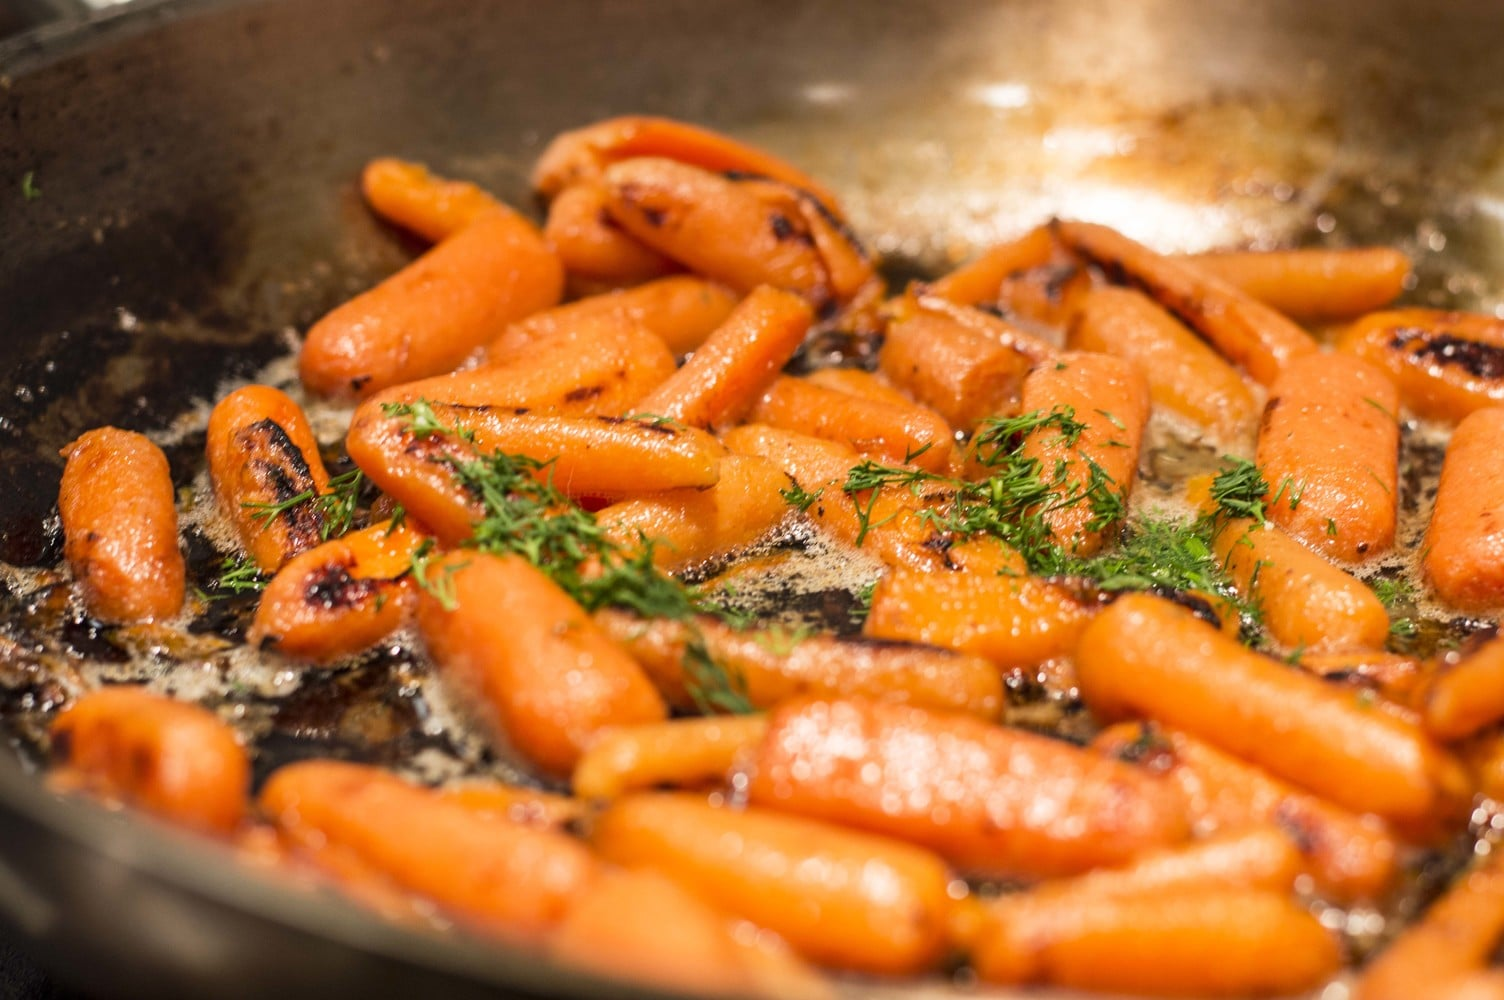 One Pot Blackened Carrots With Butter Dill Cleaver Cooking Interiors Inside Ideas Interiors design about Everything [magnanprojects.com]